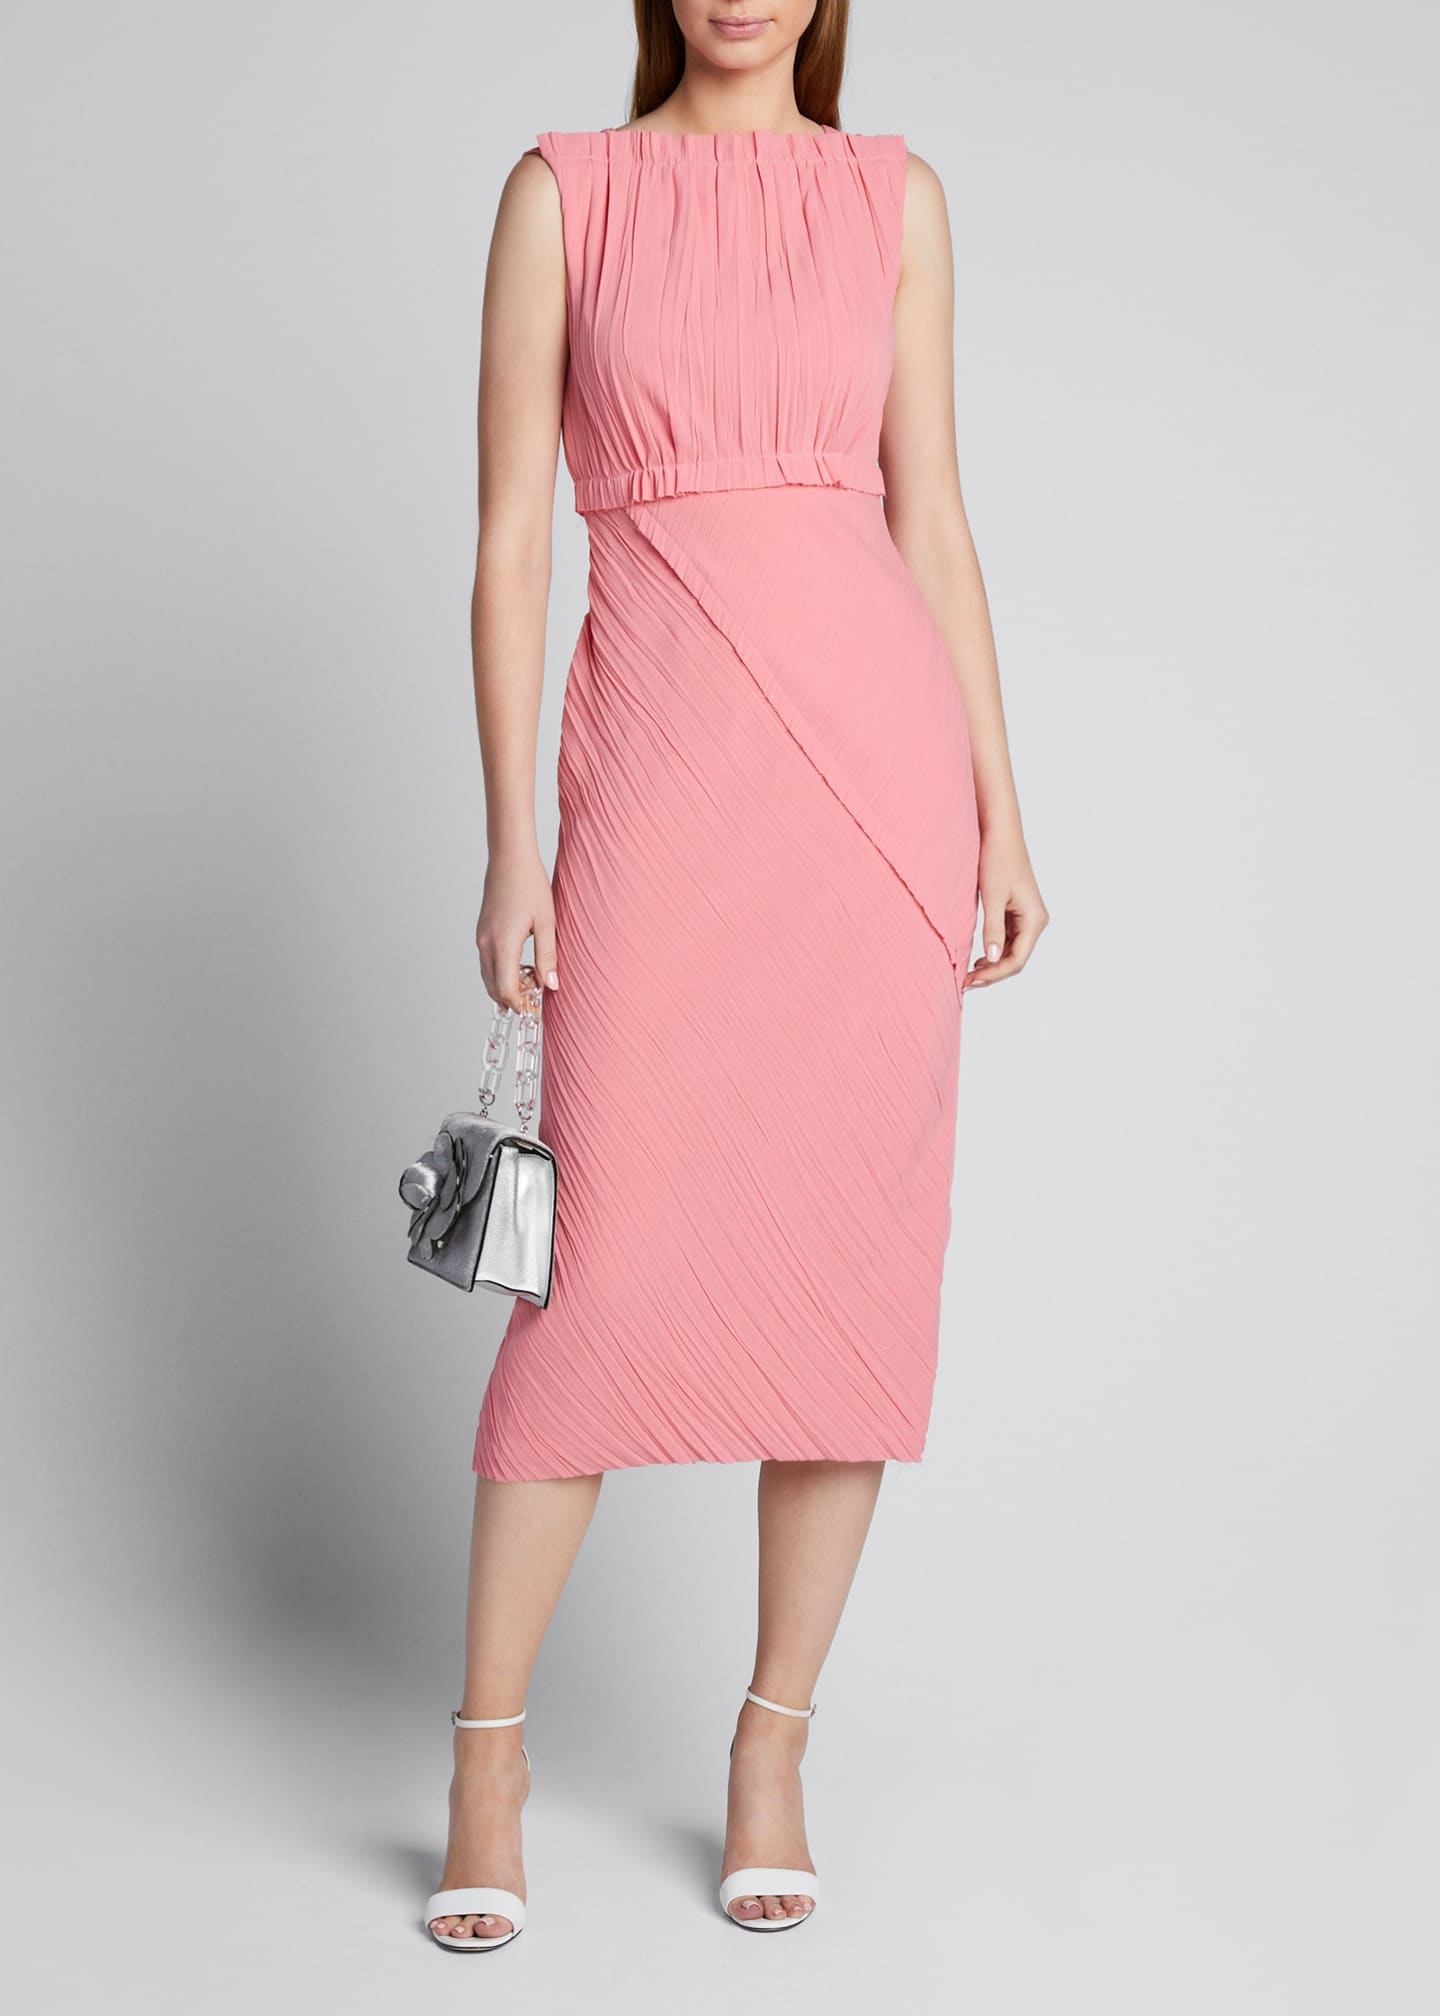 Jason Wu Collection Crinkled Satin-Back Crepe Asymmetric Dress